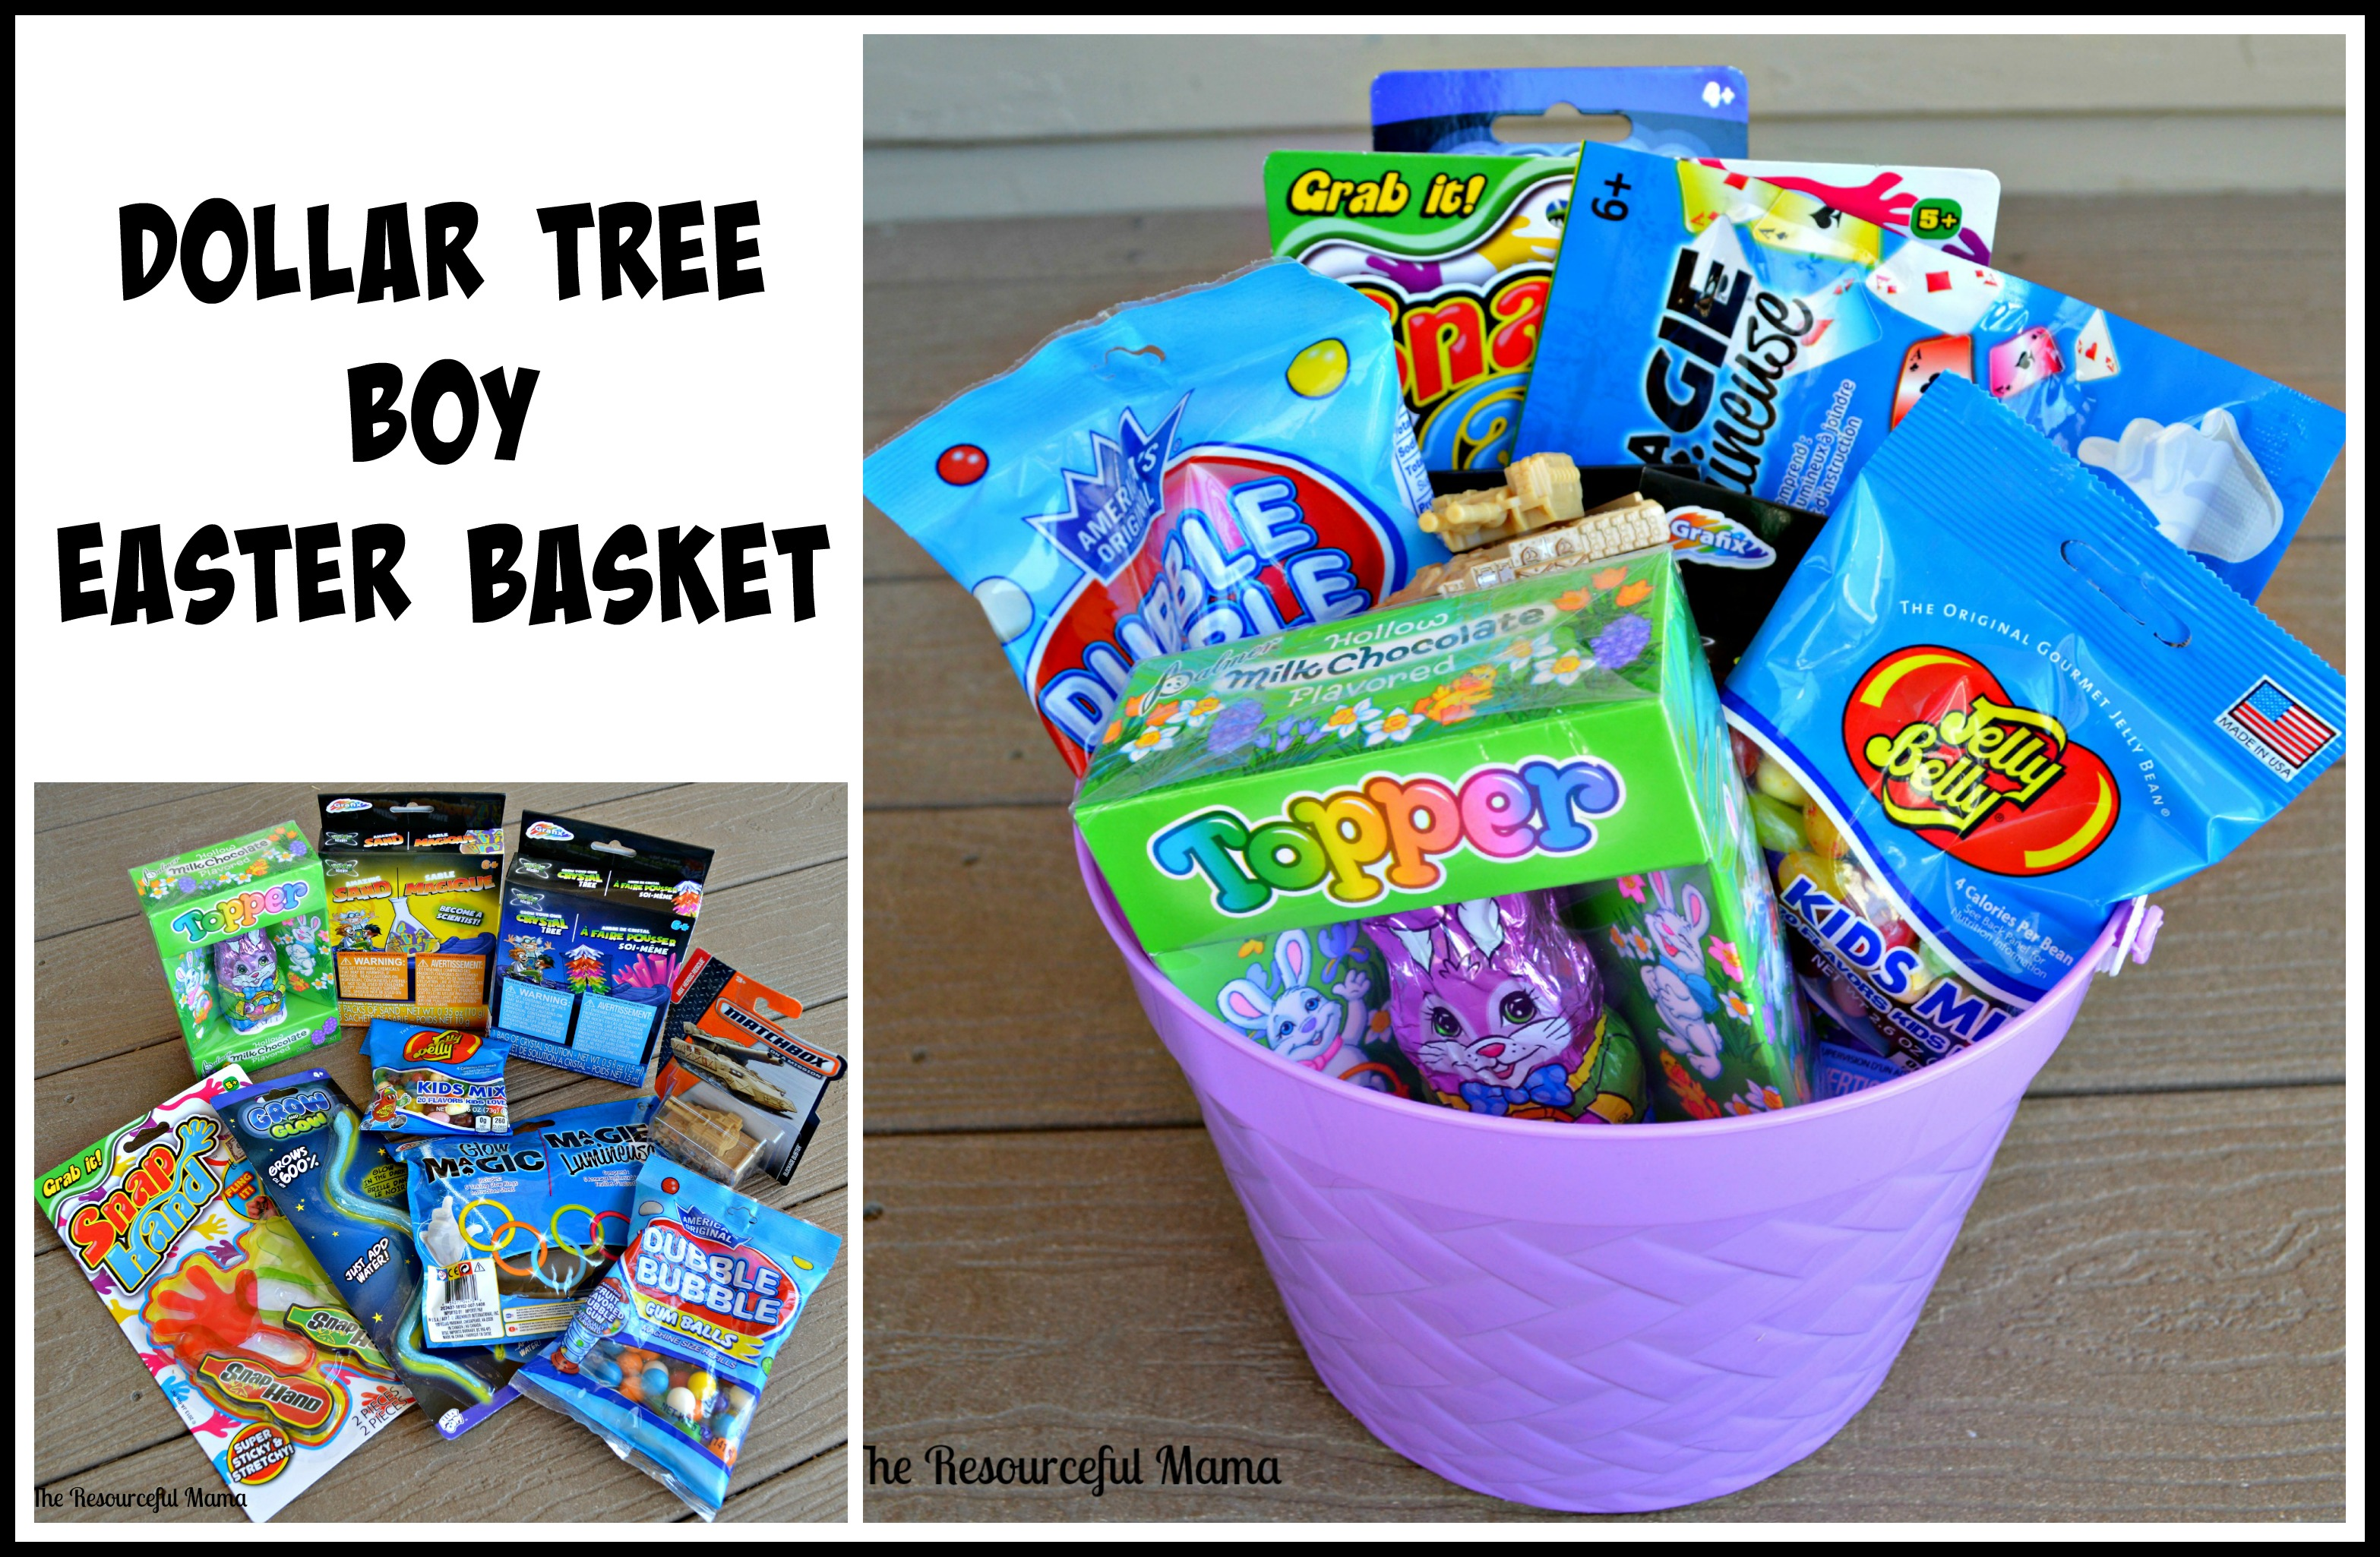 Dollar tree easter baskets the resourceful mama dollar tree easter basket boy negle